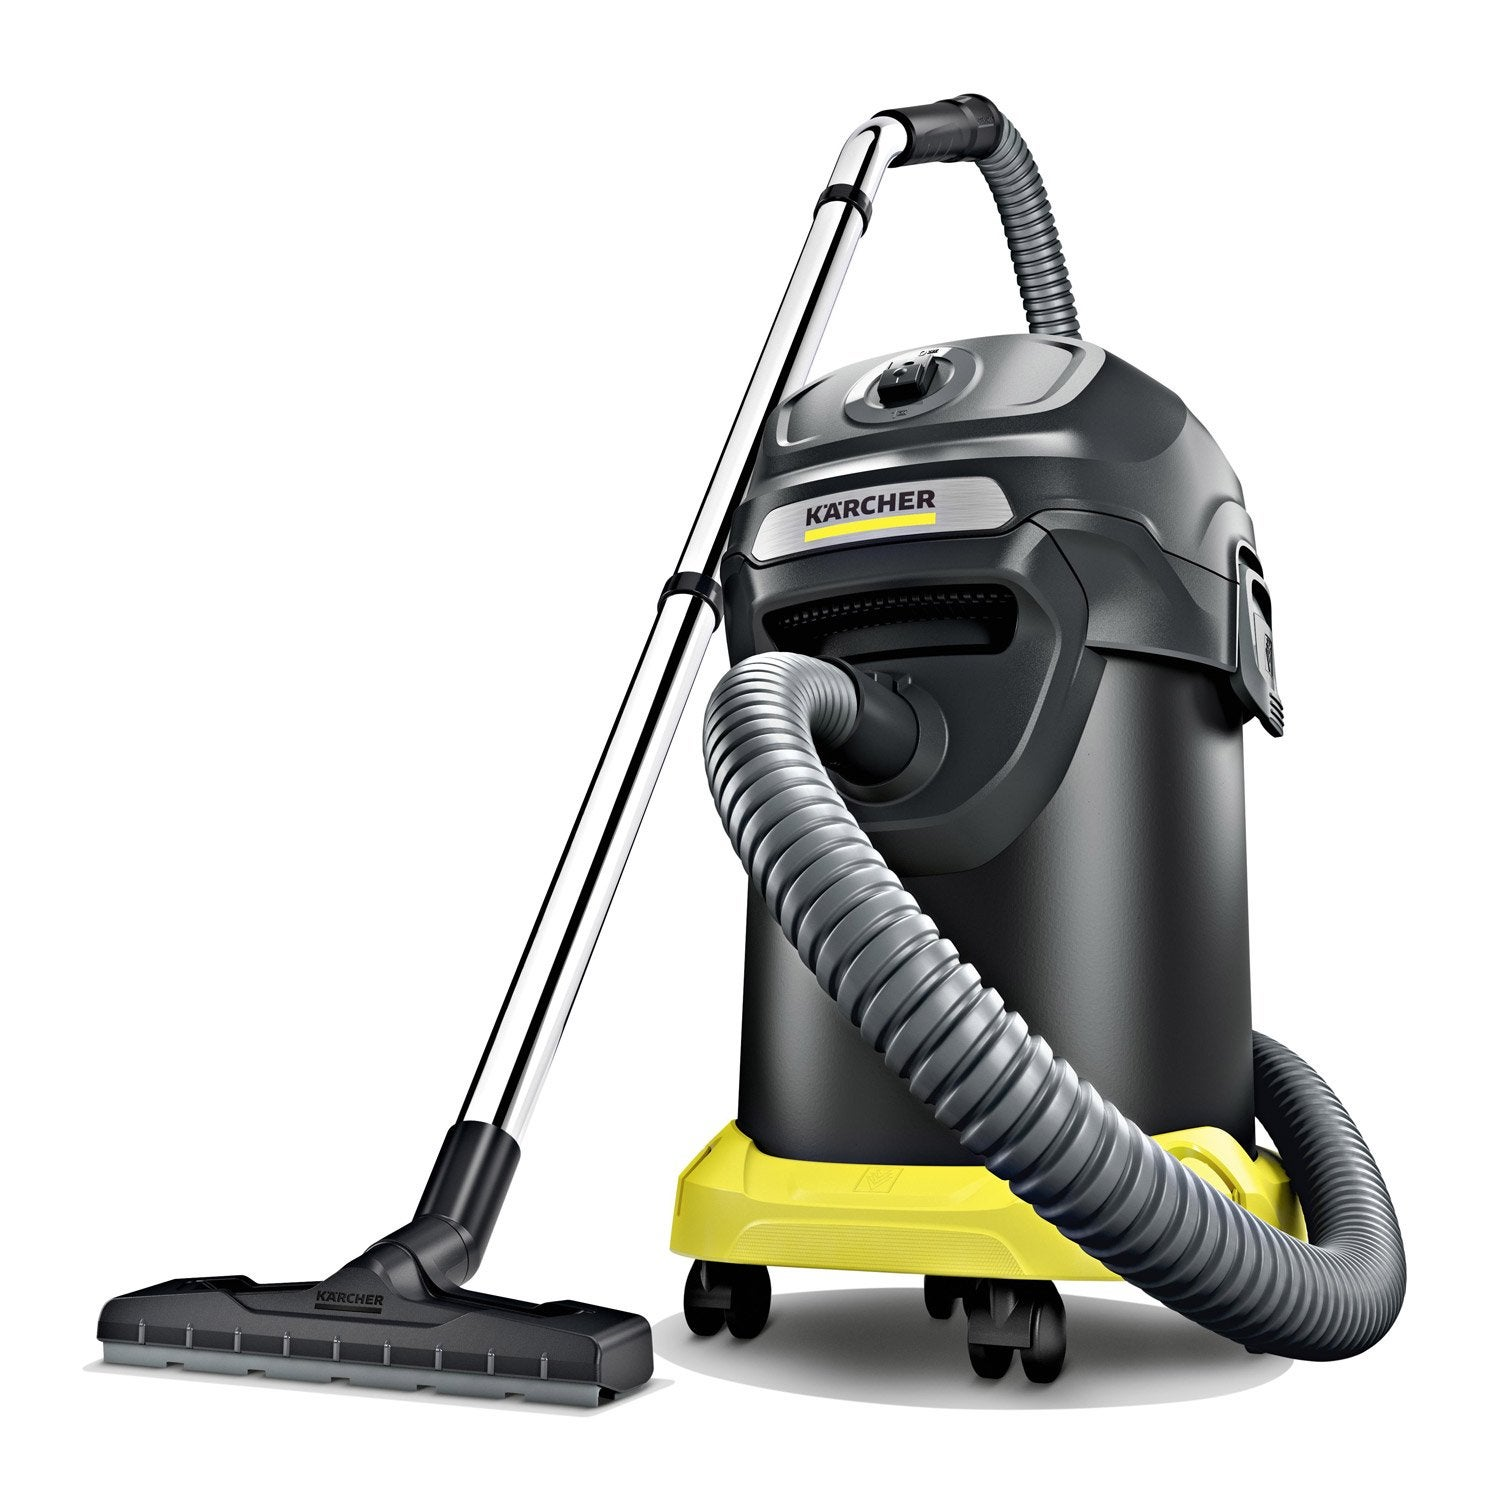 aspirateur karcher maison interesting aspirateur karcher. Black Bedroom Furniture Sets. Home Design Ideas